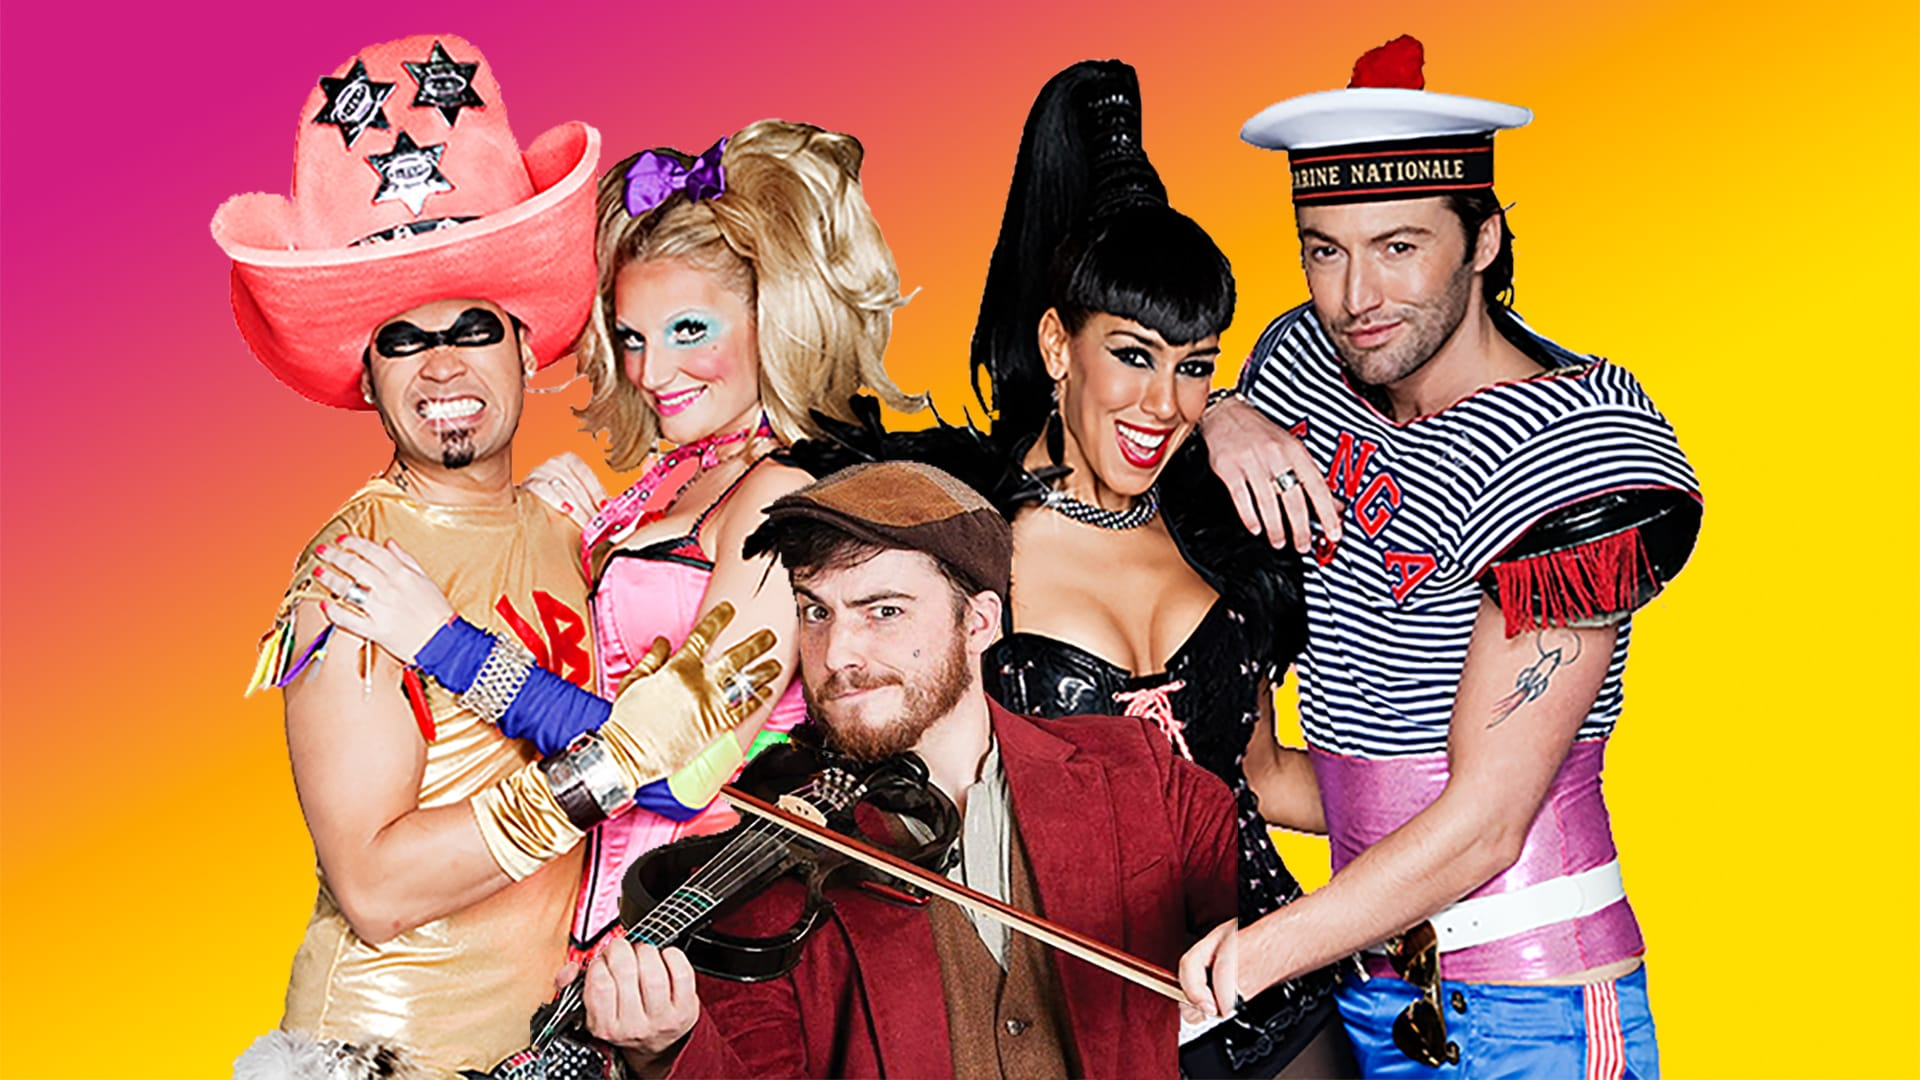 vengaboys and cullen vance who made a fantastic cover version of boom boom boom boom